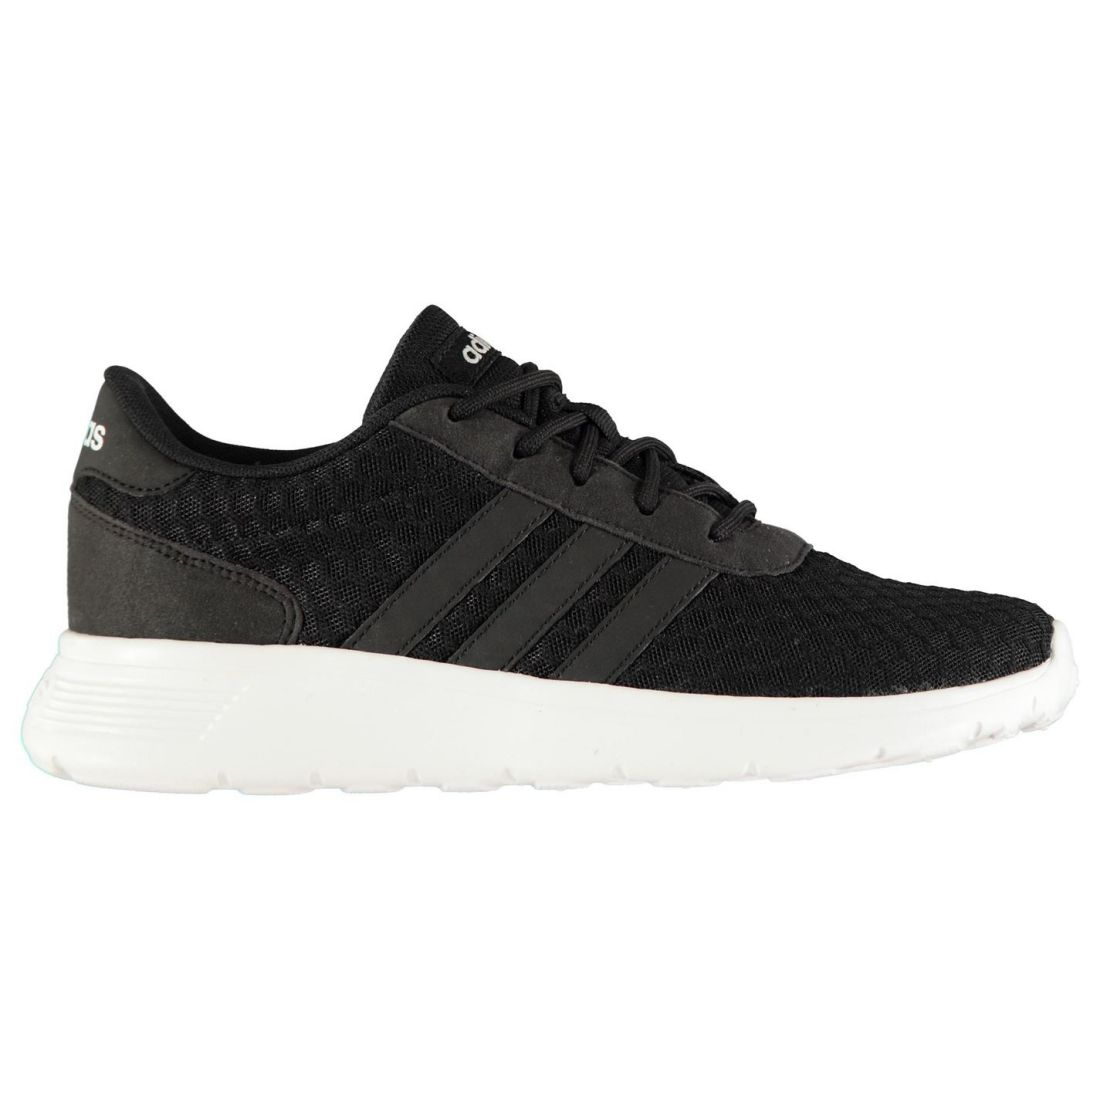 6d29f83b8 adidas Womens Lite Racer Trainers Runners Lace Up Breathable Suede ...